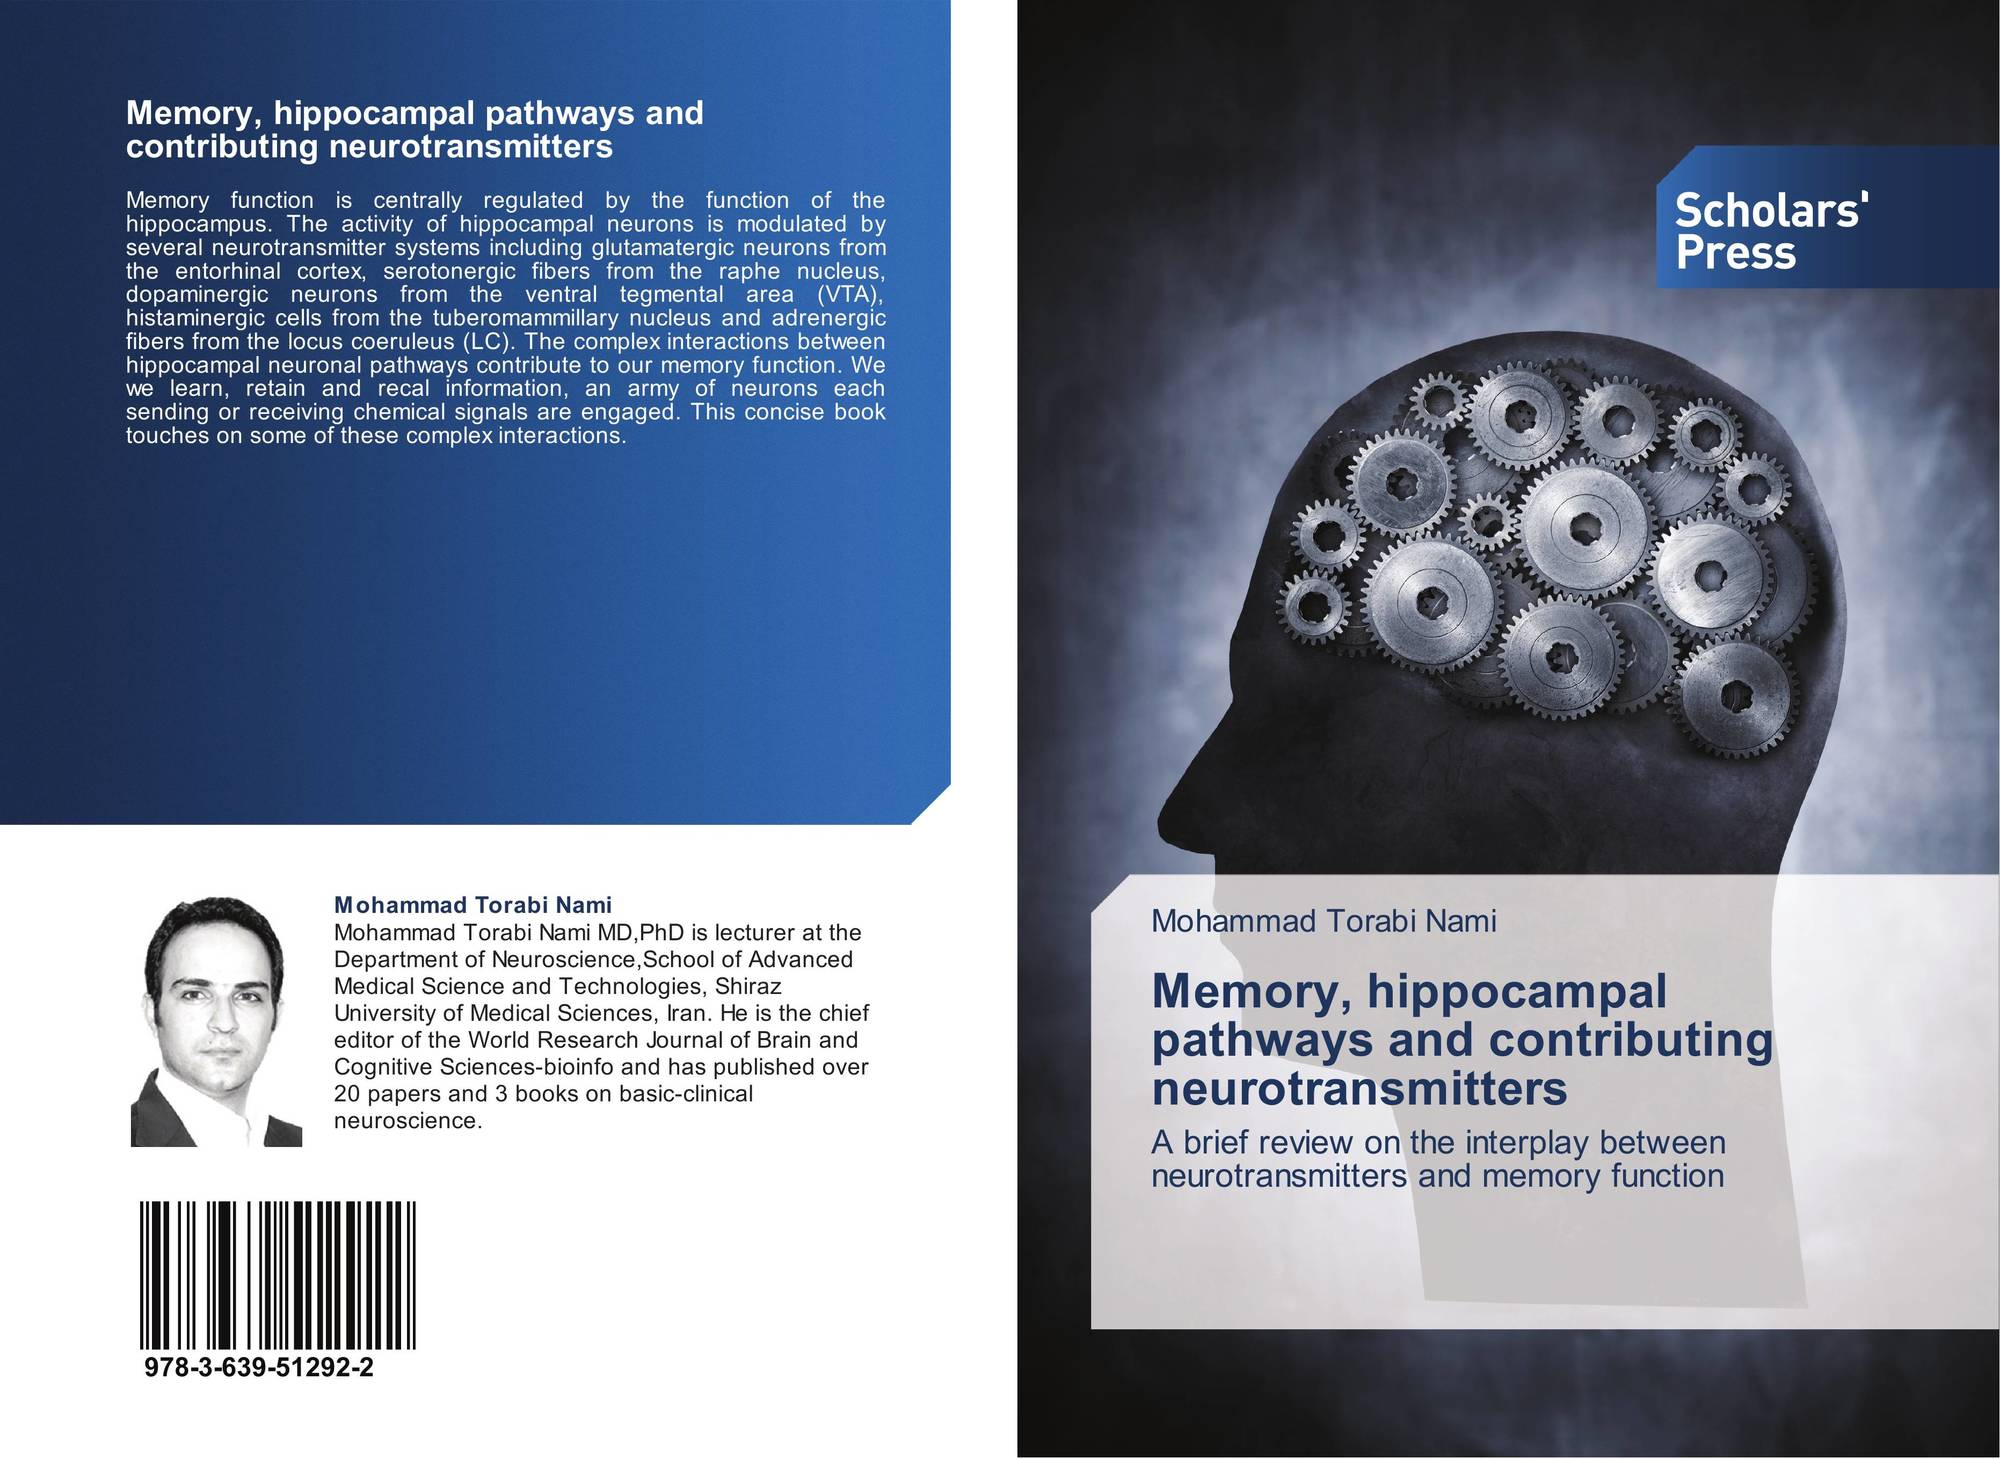 memory functions of the hippocampus psychology essay This essay is about some of these tentative links between brain and mind, and how  discussed and what they might imply about the specific functions in memory the relevant brain structures might perform models as to how these functions might be  because of its known importance to memory and ease of study, the hippocampus (a medial.